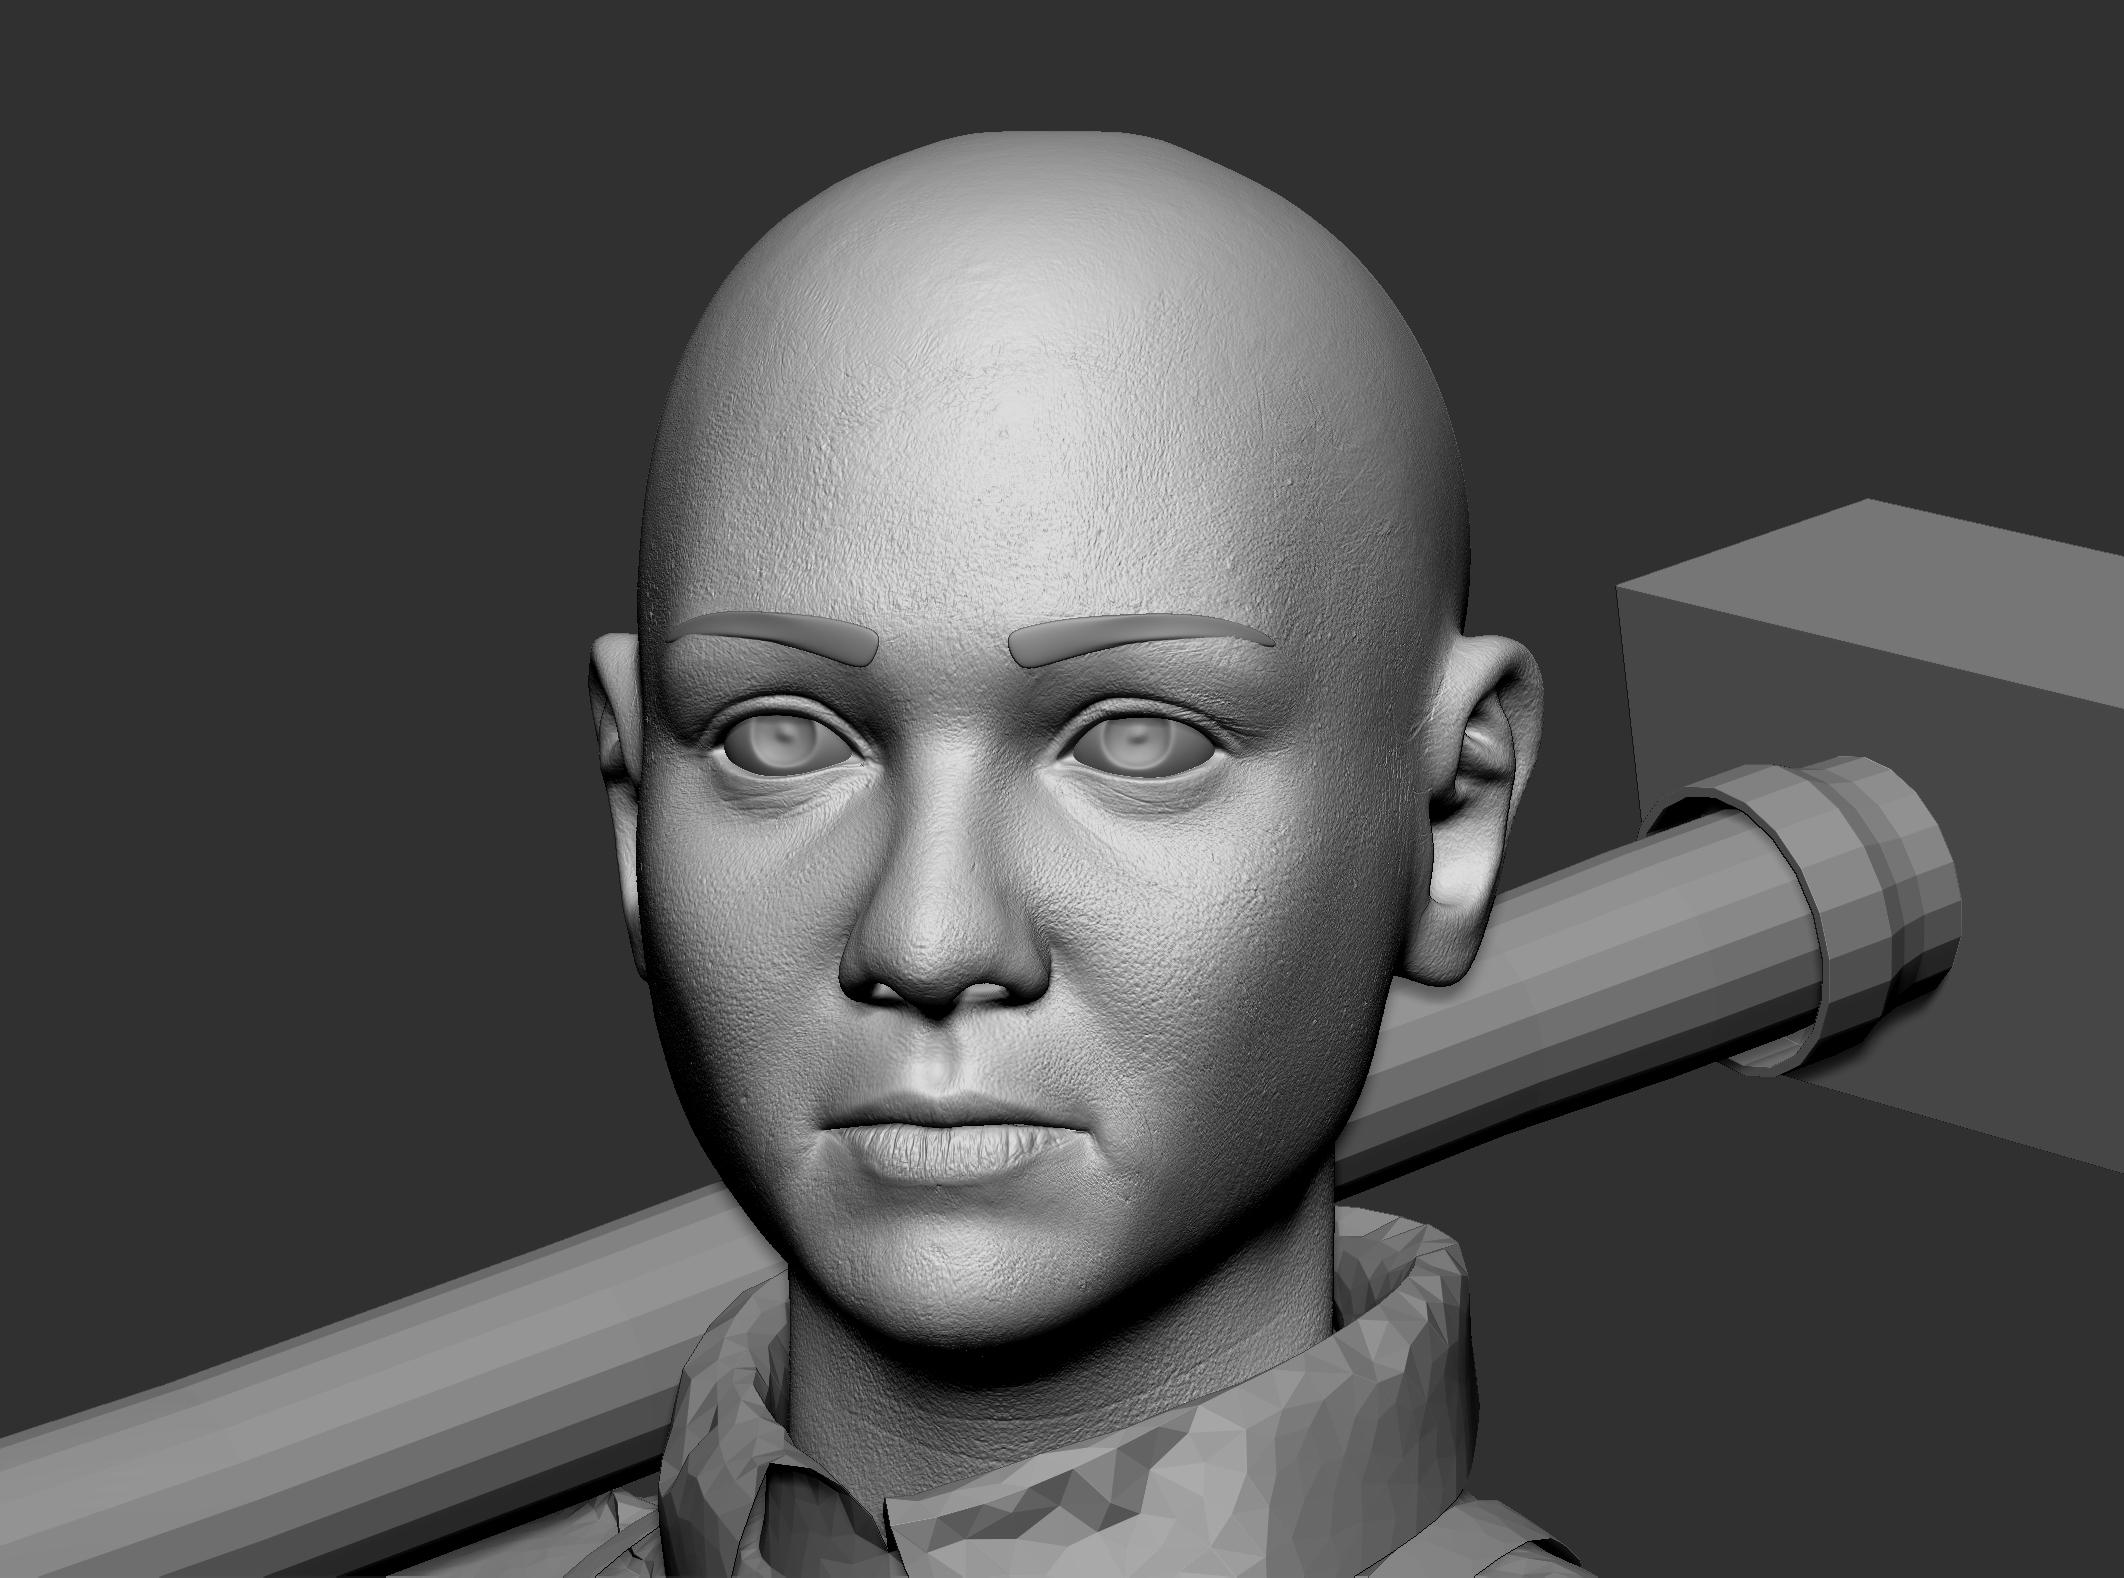 ZBrush_Screengrab_02